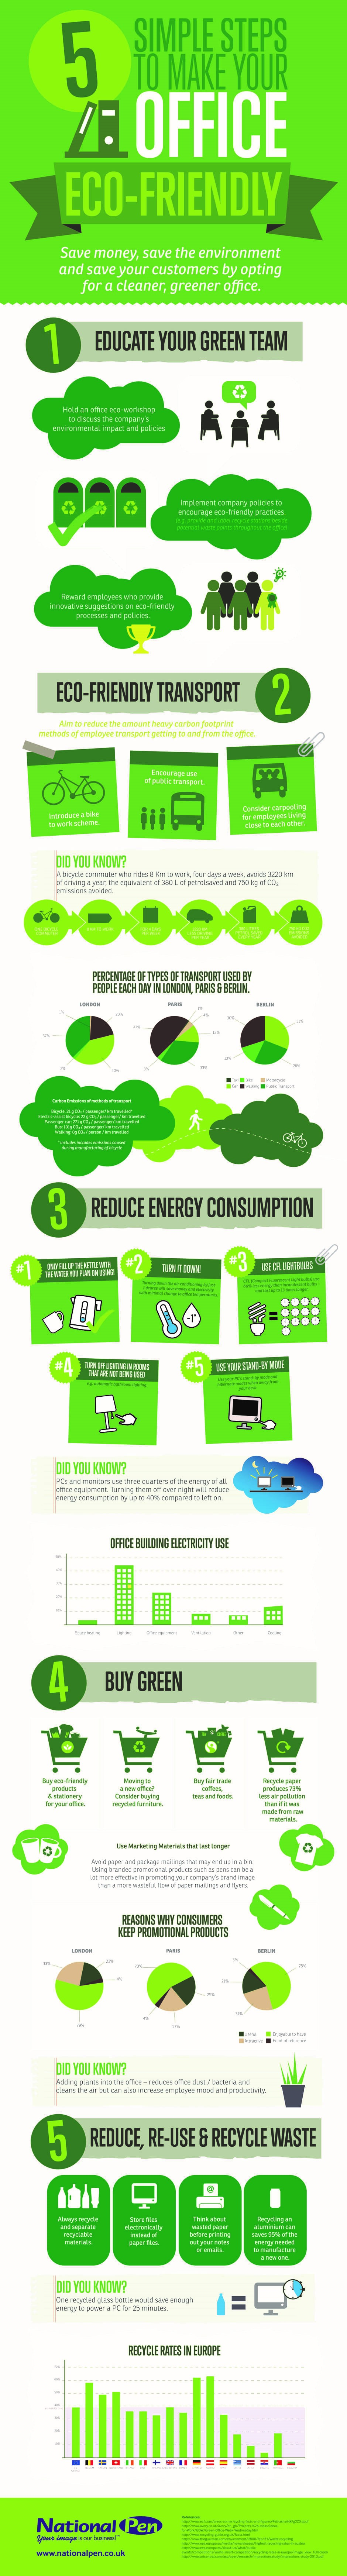 5 Simple Steps To Make Your Office Eco-Friendly